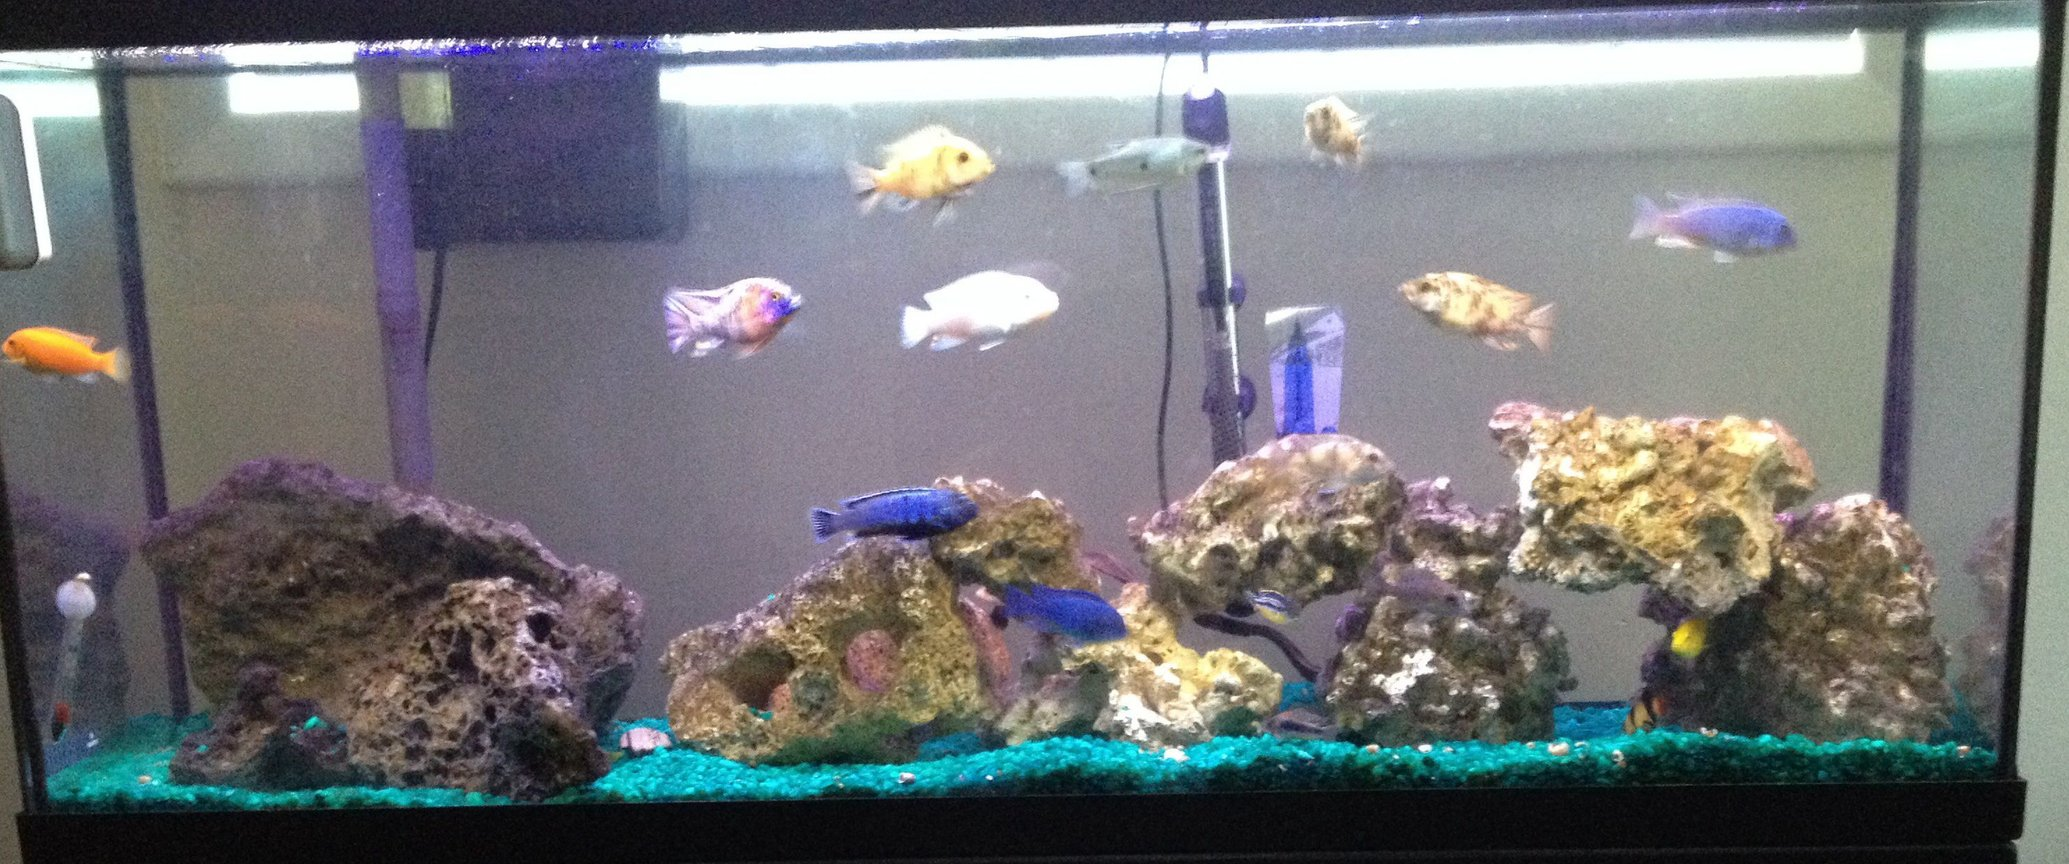 55 gallons freshwater fish tank (mostly fish and non-living decorations) - African Cichlid Tank